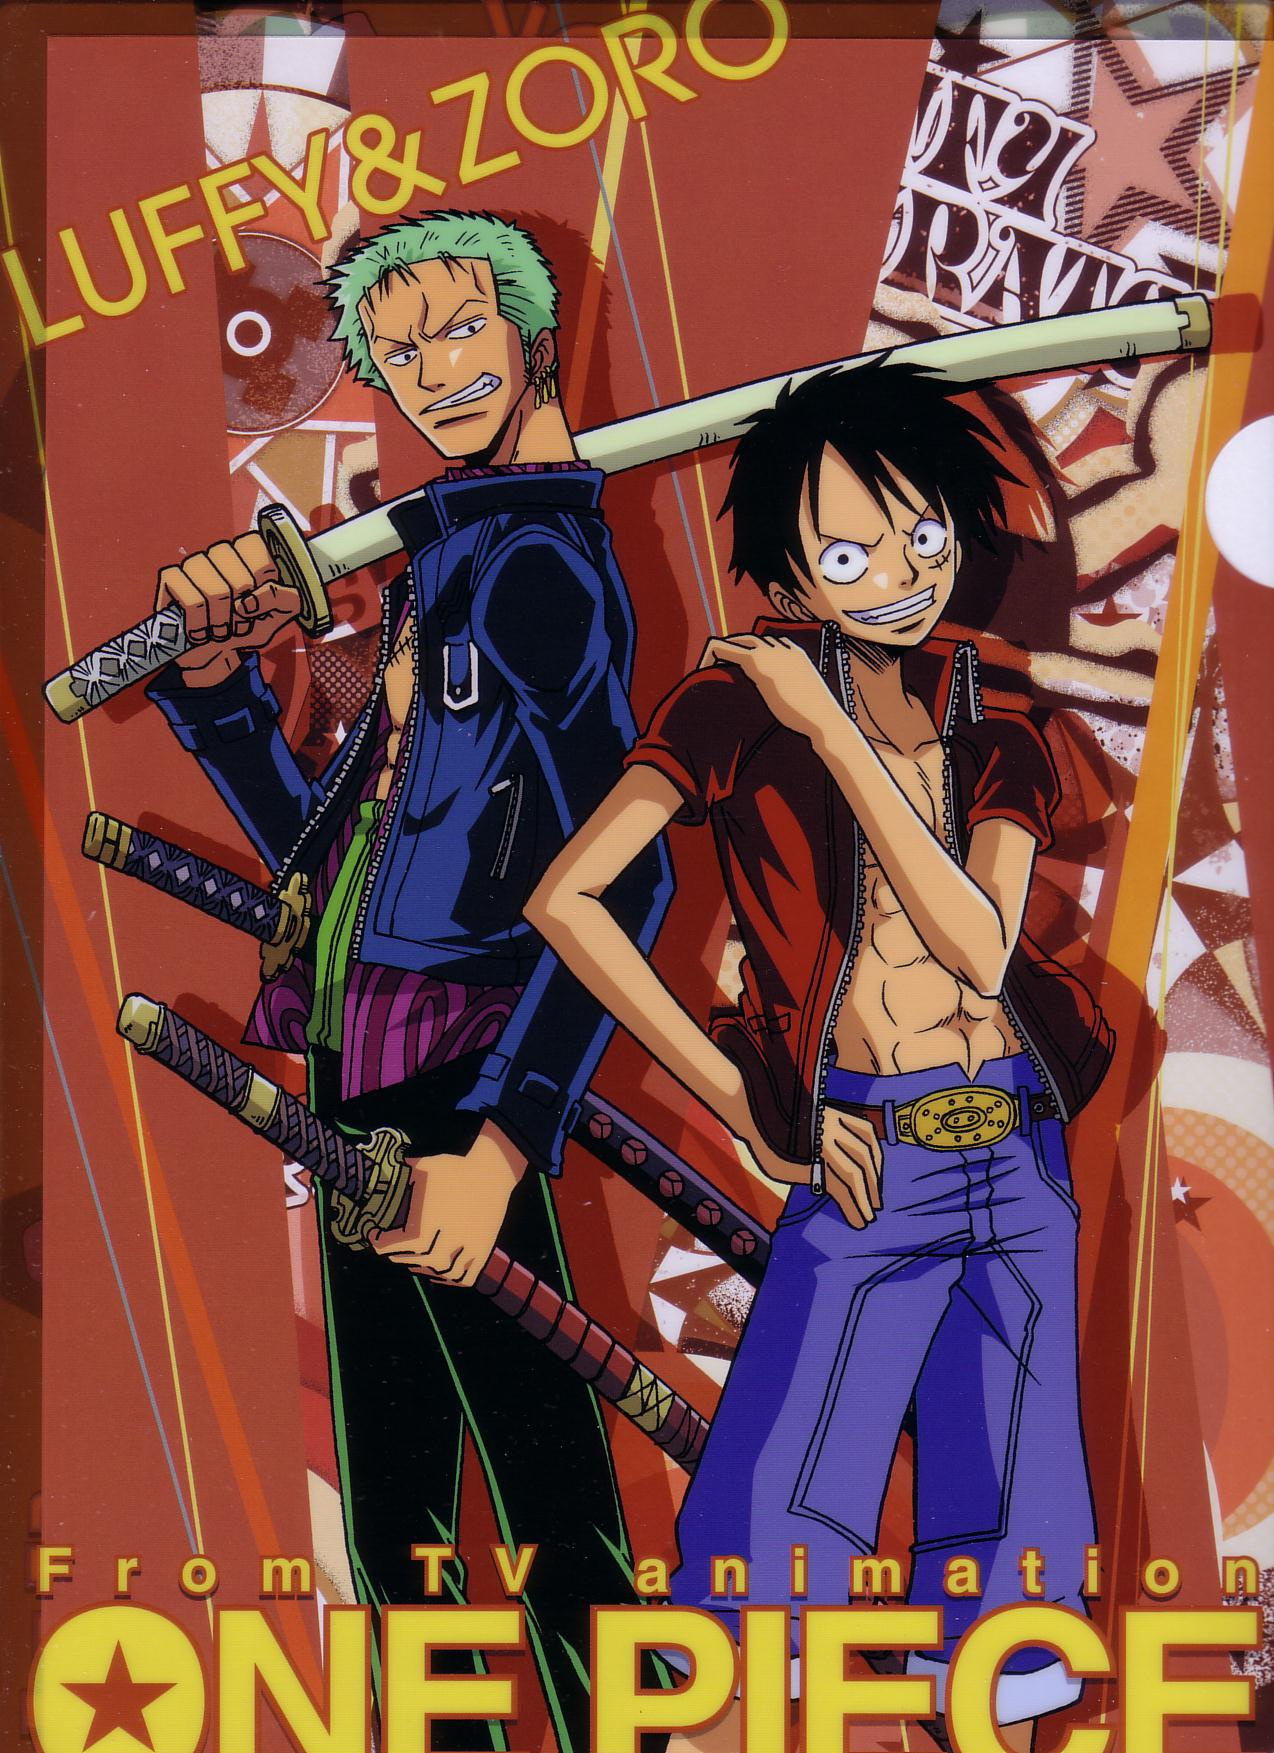 One Piece Images Zoro And Luffy Hd Wallpaper And Background Photos